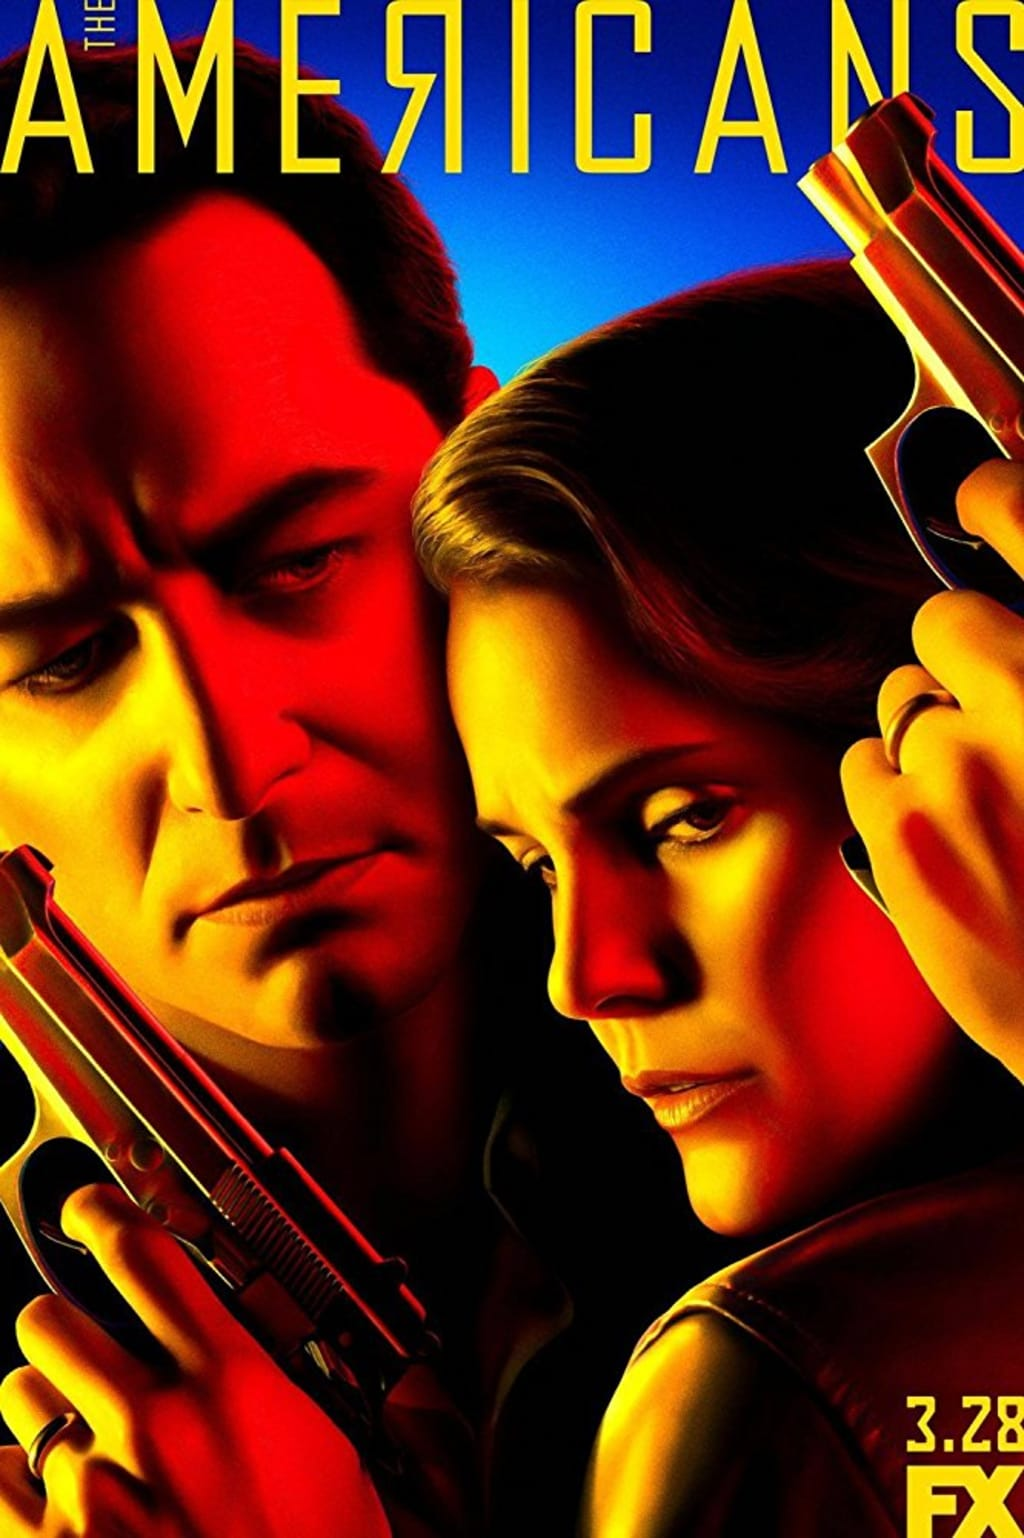 Review of 'The Americans' 6.7